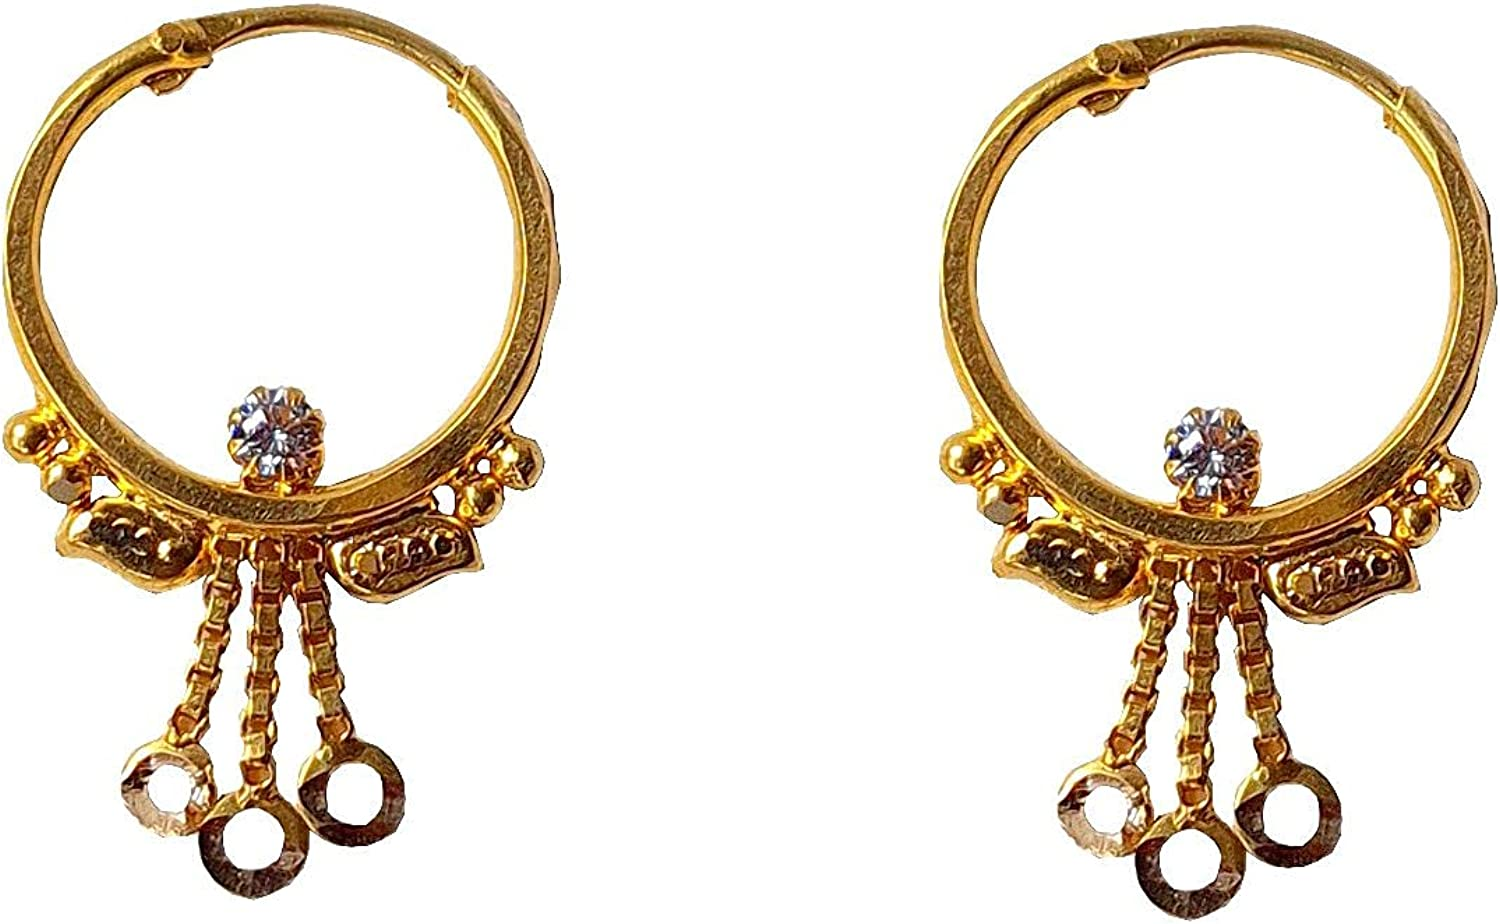 Certified Solid 22K/18K Yellow Fine Gold Stone Design Hoop Earrings Available In Both 22 Carat And 18 Carat Fine Gold, For Women,Girls,Kids,Gifts,Bridal,Wedding,Engagement & Celebrations